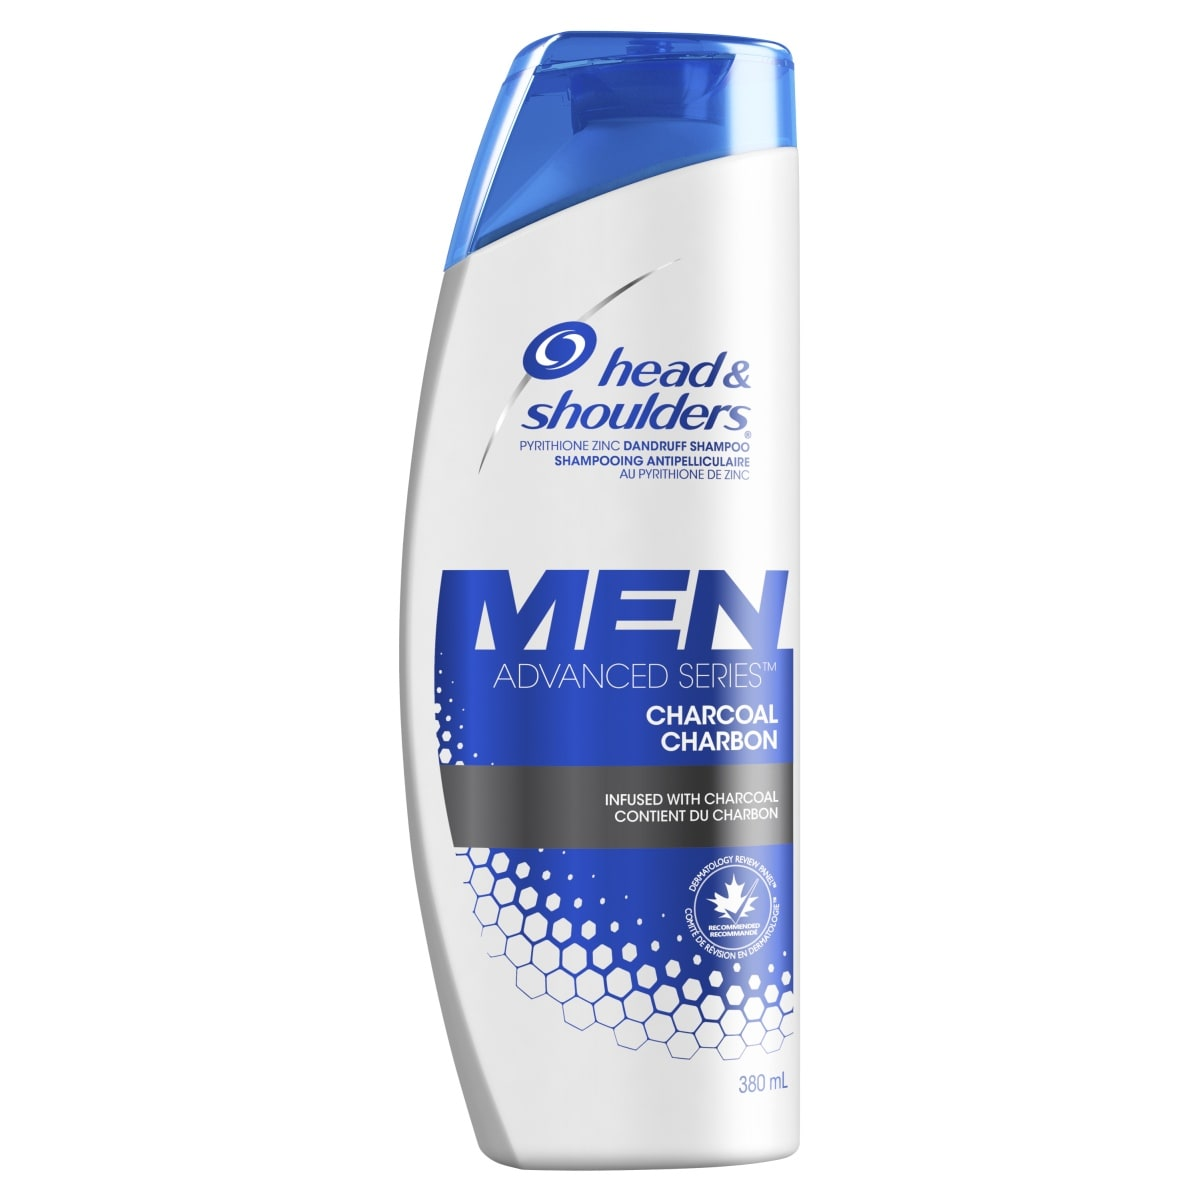 Men Advanced Charcoal Shampoo